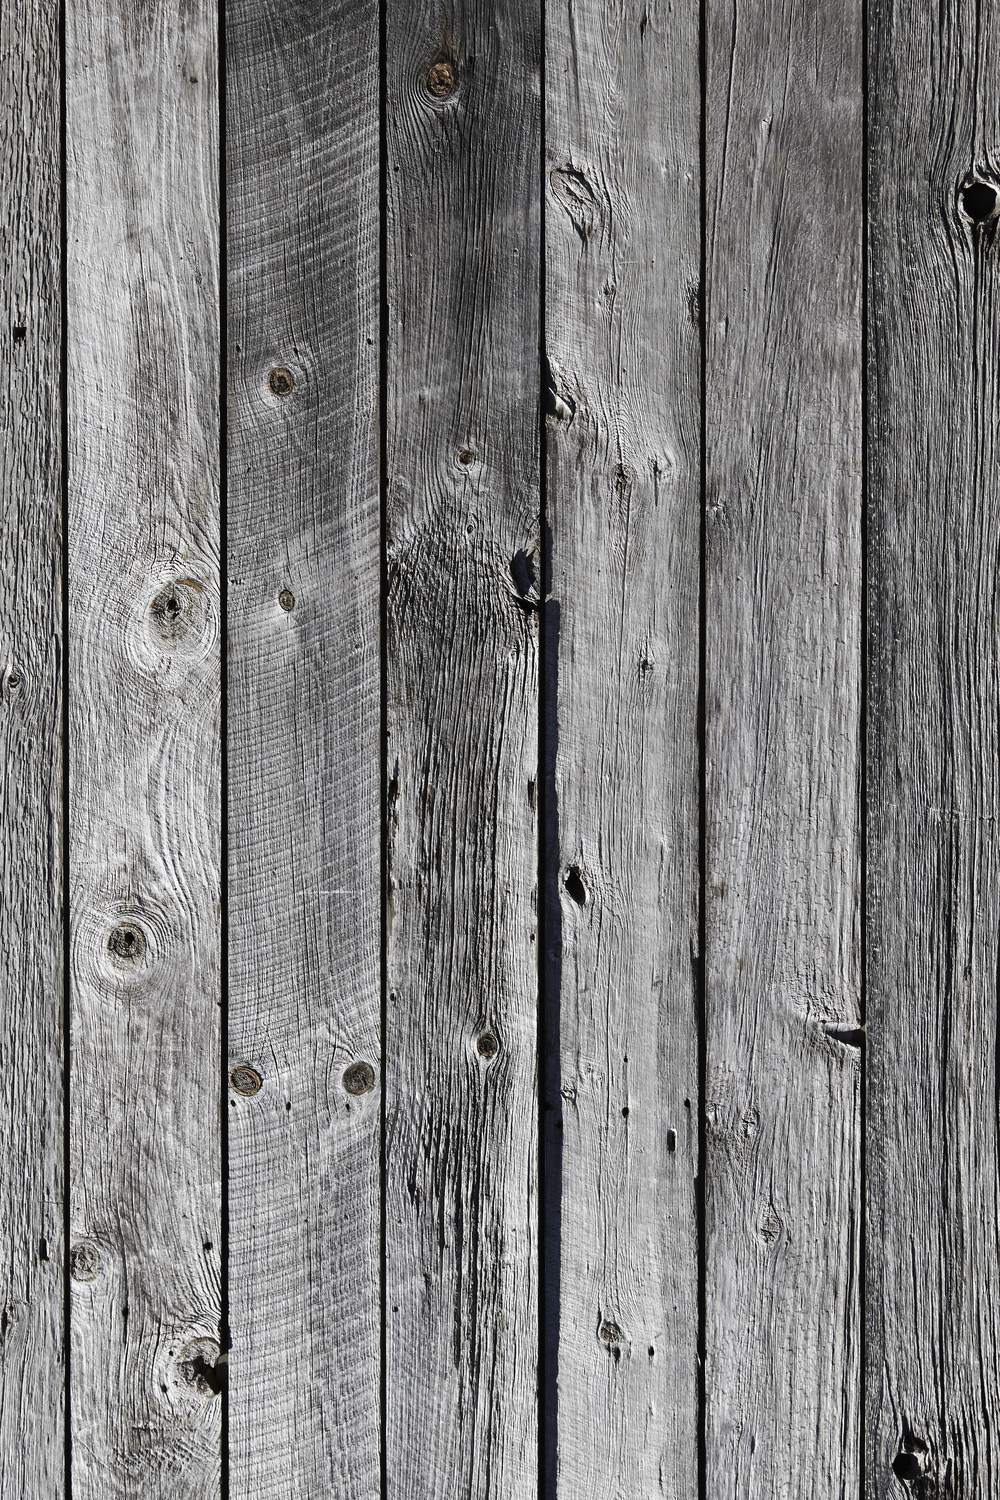 Reclaimed Barn Siding [Silver Pines]